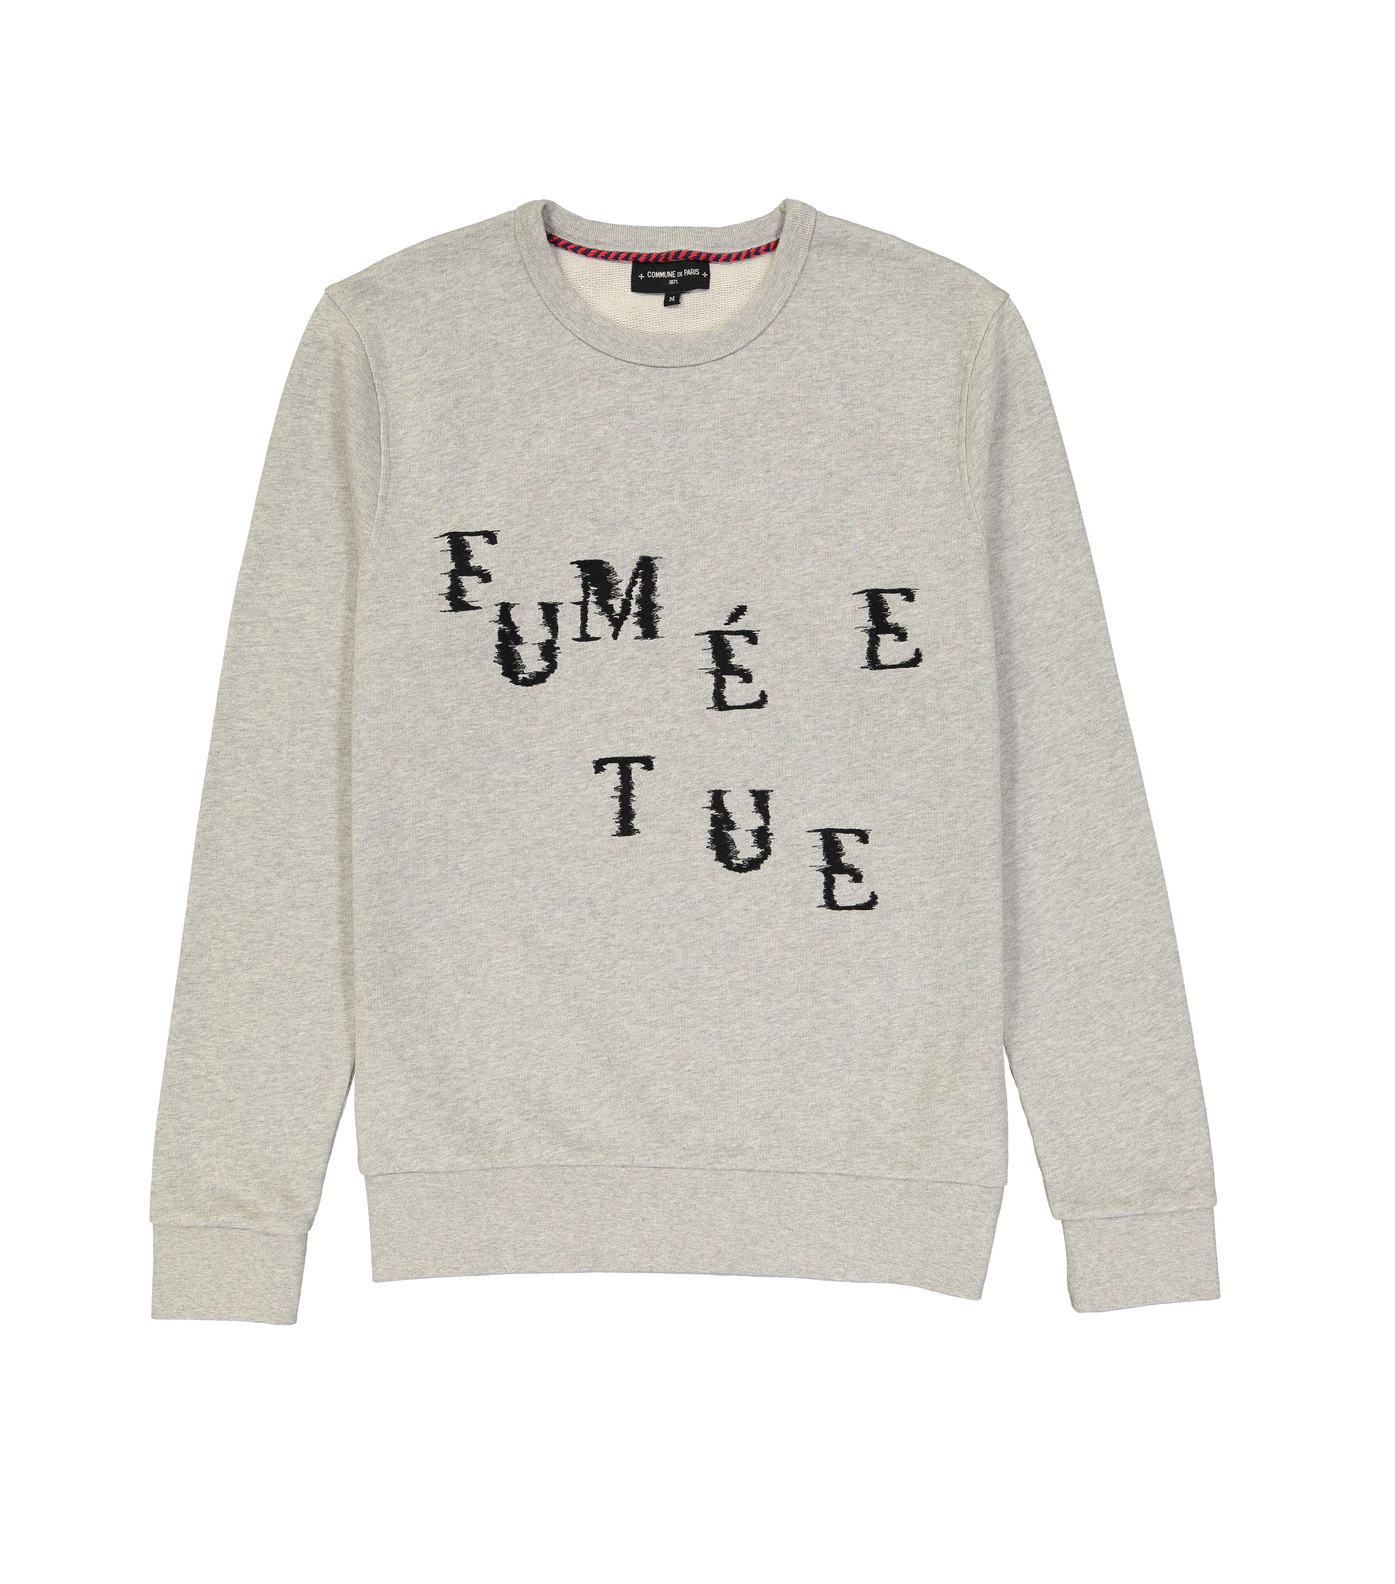 SWEAT  FUMEE TUE - Gris chiné